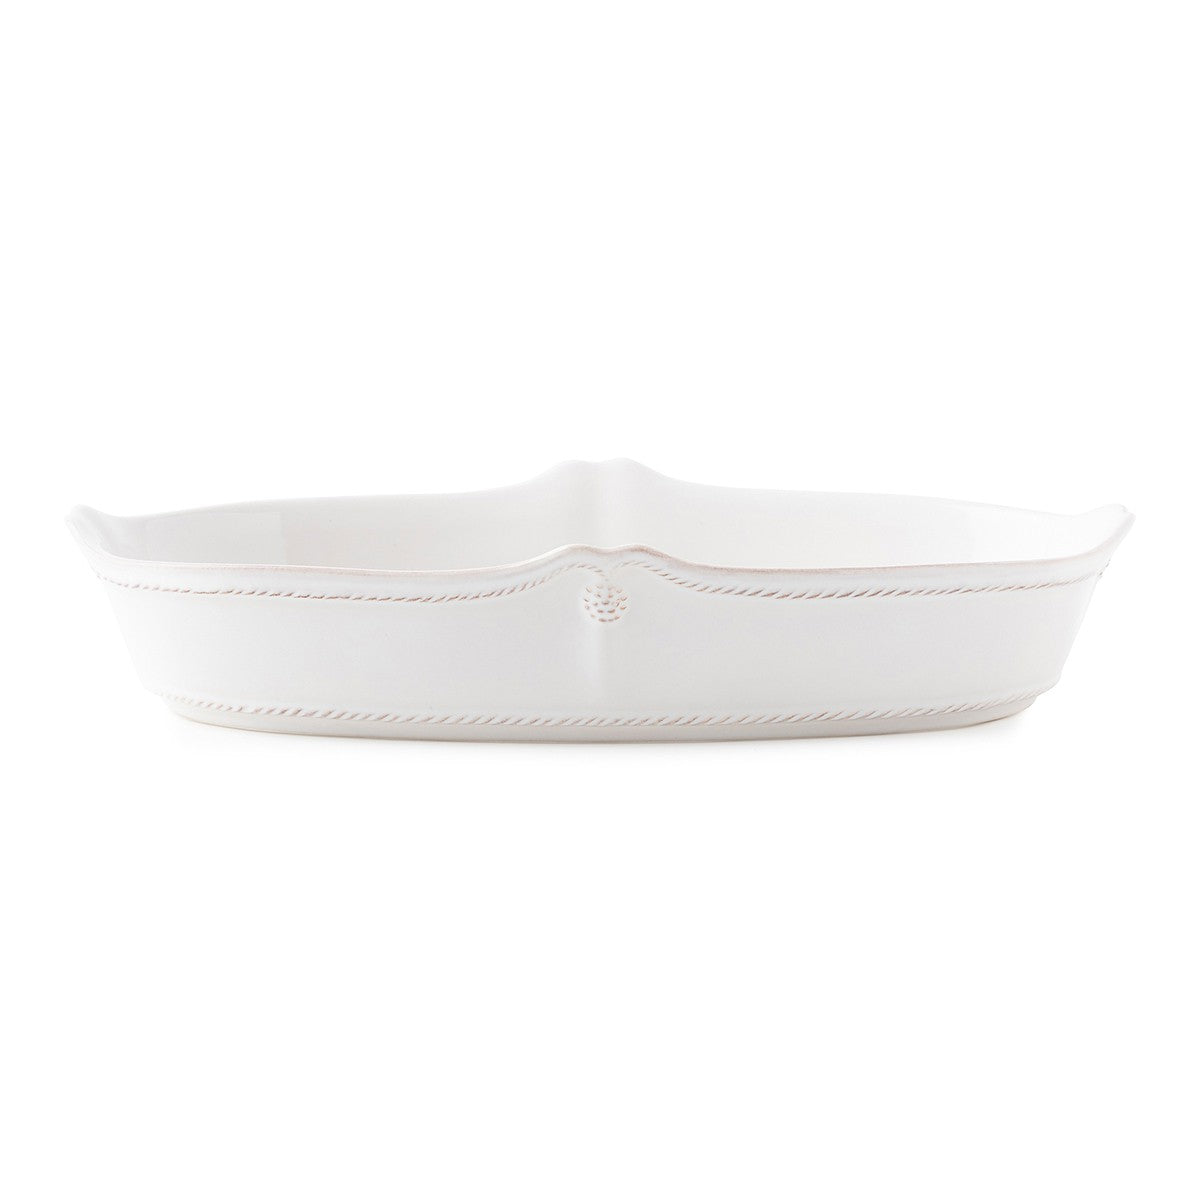 "Juliska - Berry & Thread Whitewash 12"" Oblong Serving Dish"